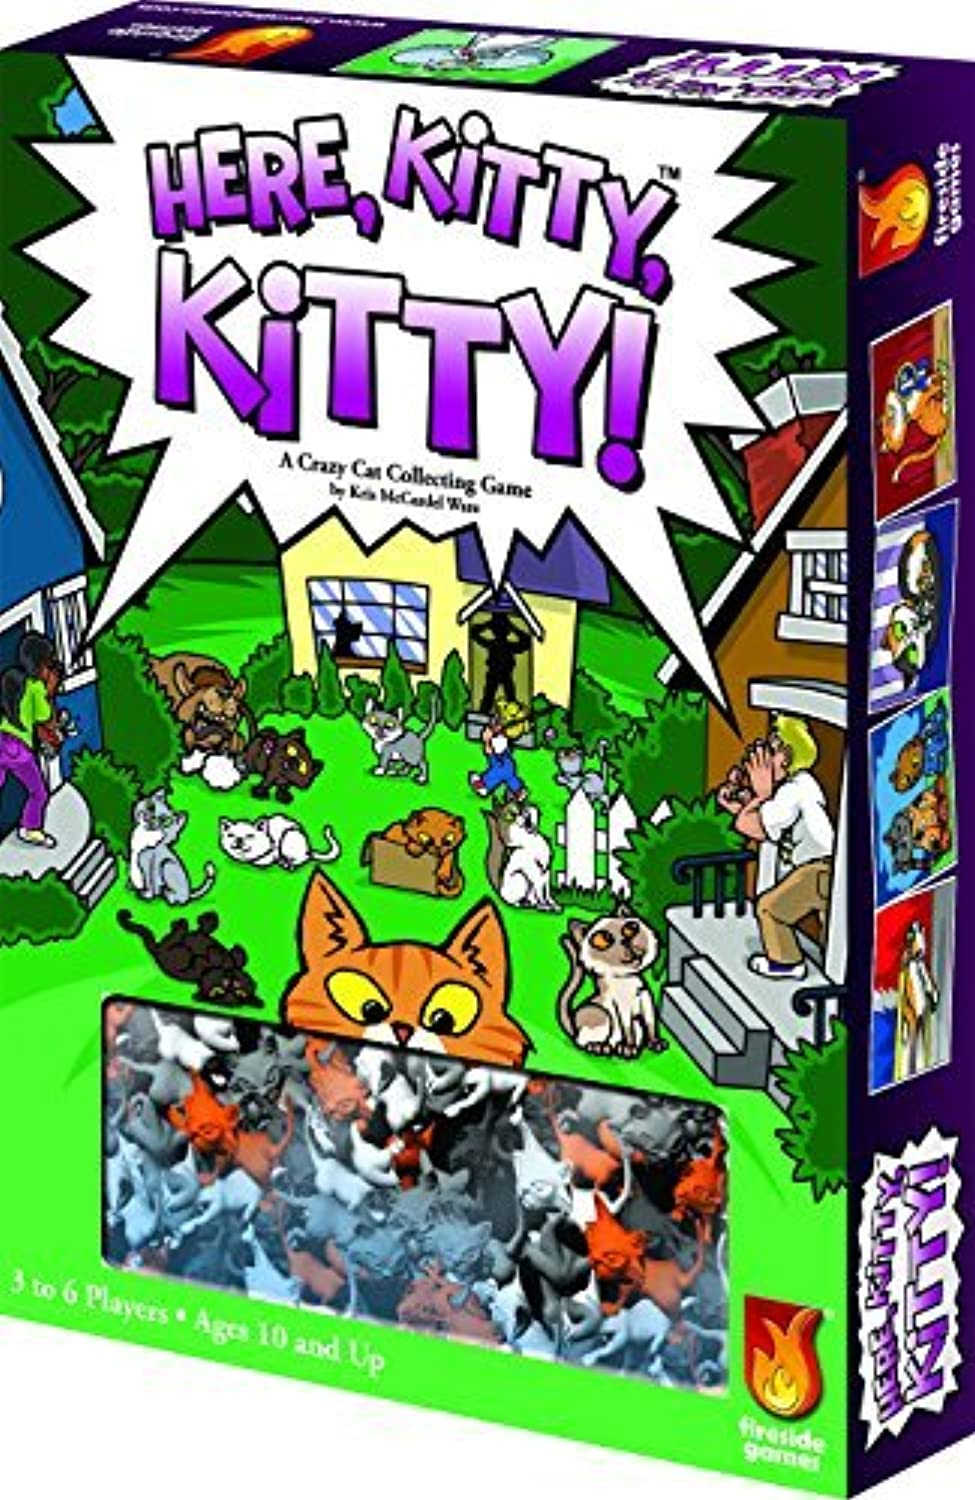 Here Kitty Kitty by Fireside Games